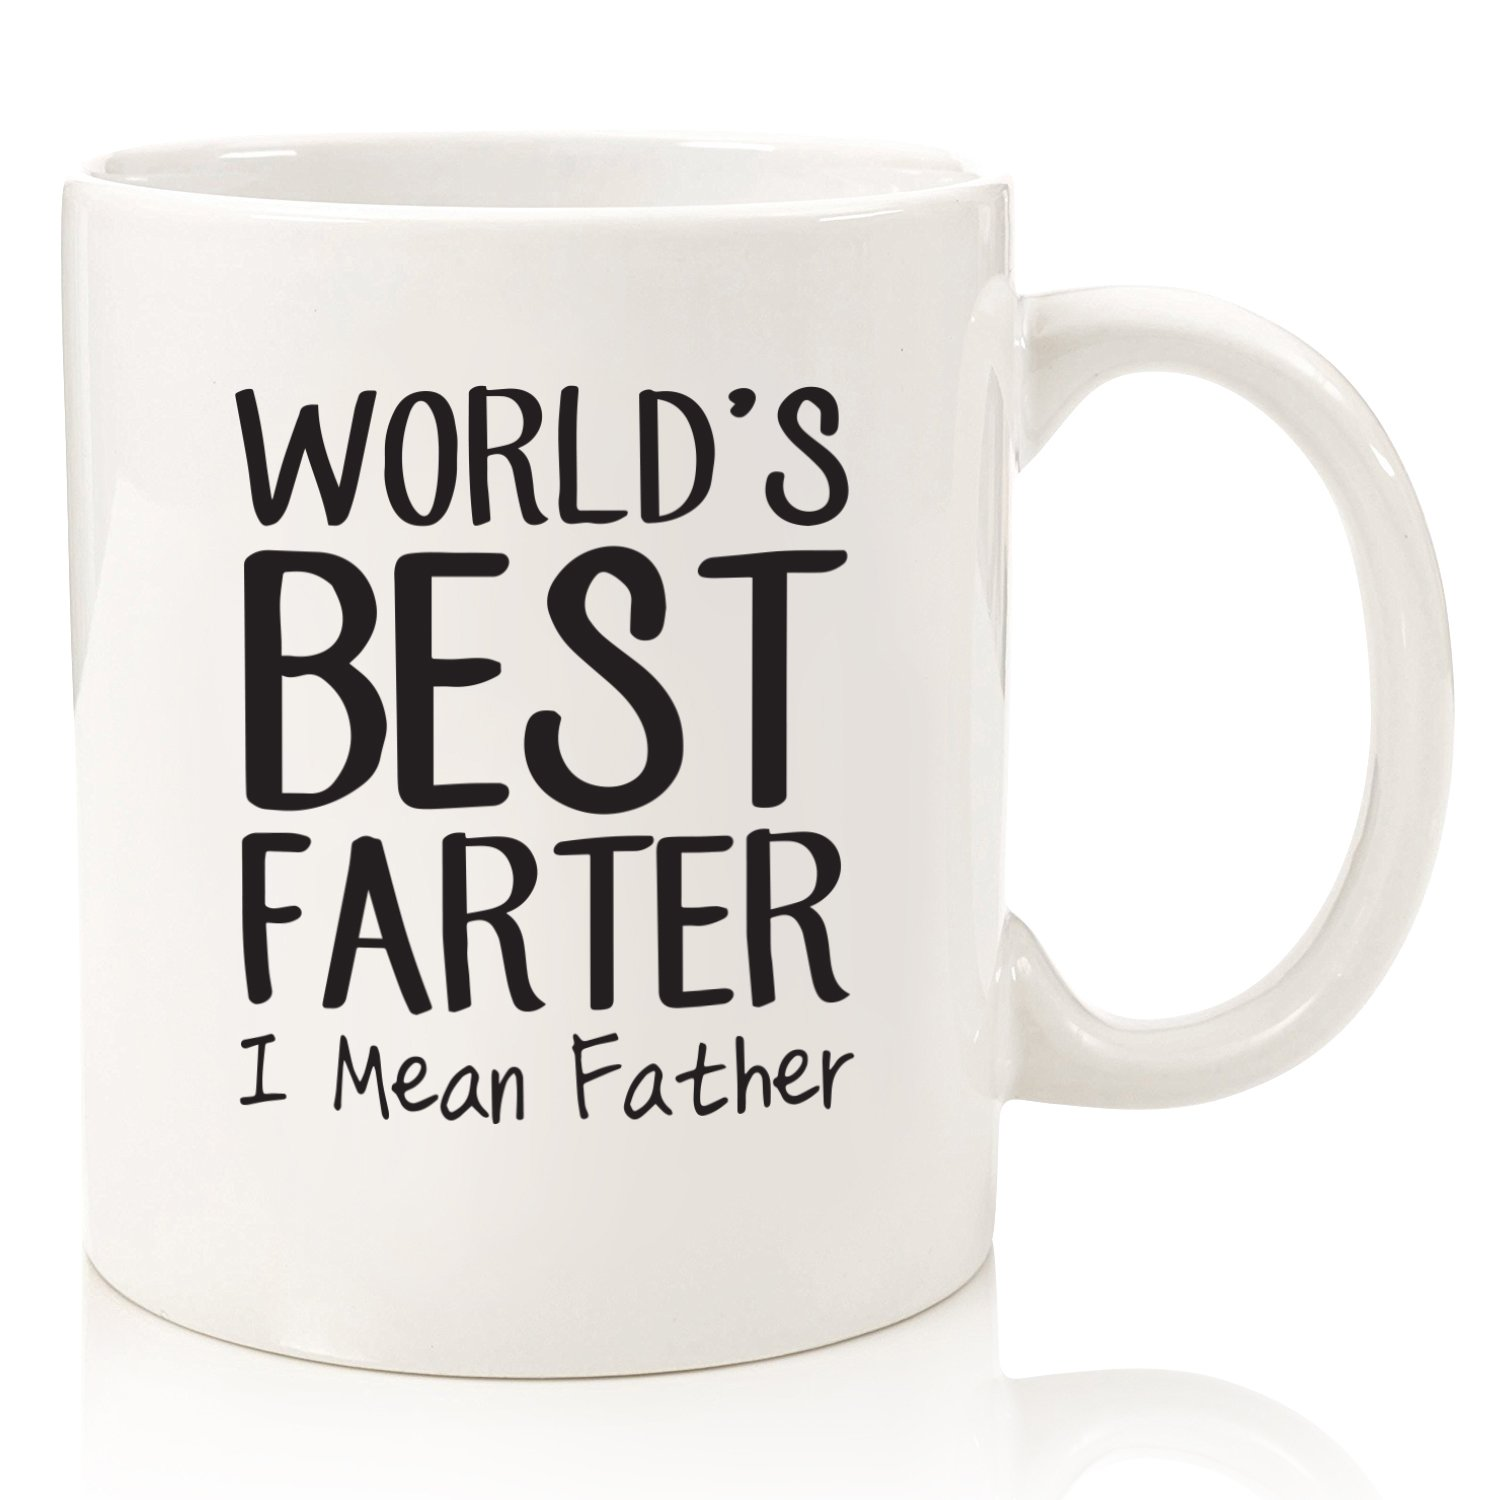 Fathers Day Gifts For Dad - World's Best F_rter / Father Funny Mug - Best Dad or Husband Gift - Gag Present Idea For Him From Son, Daughter, Wife - Unique Birthday Gift For Men, Guys - Fun Novelty Cup